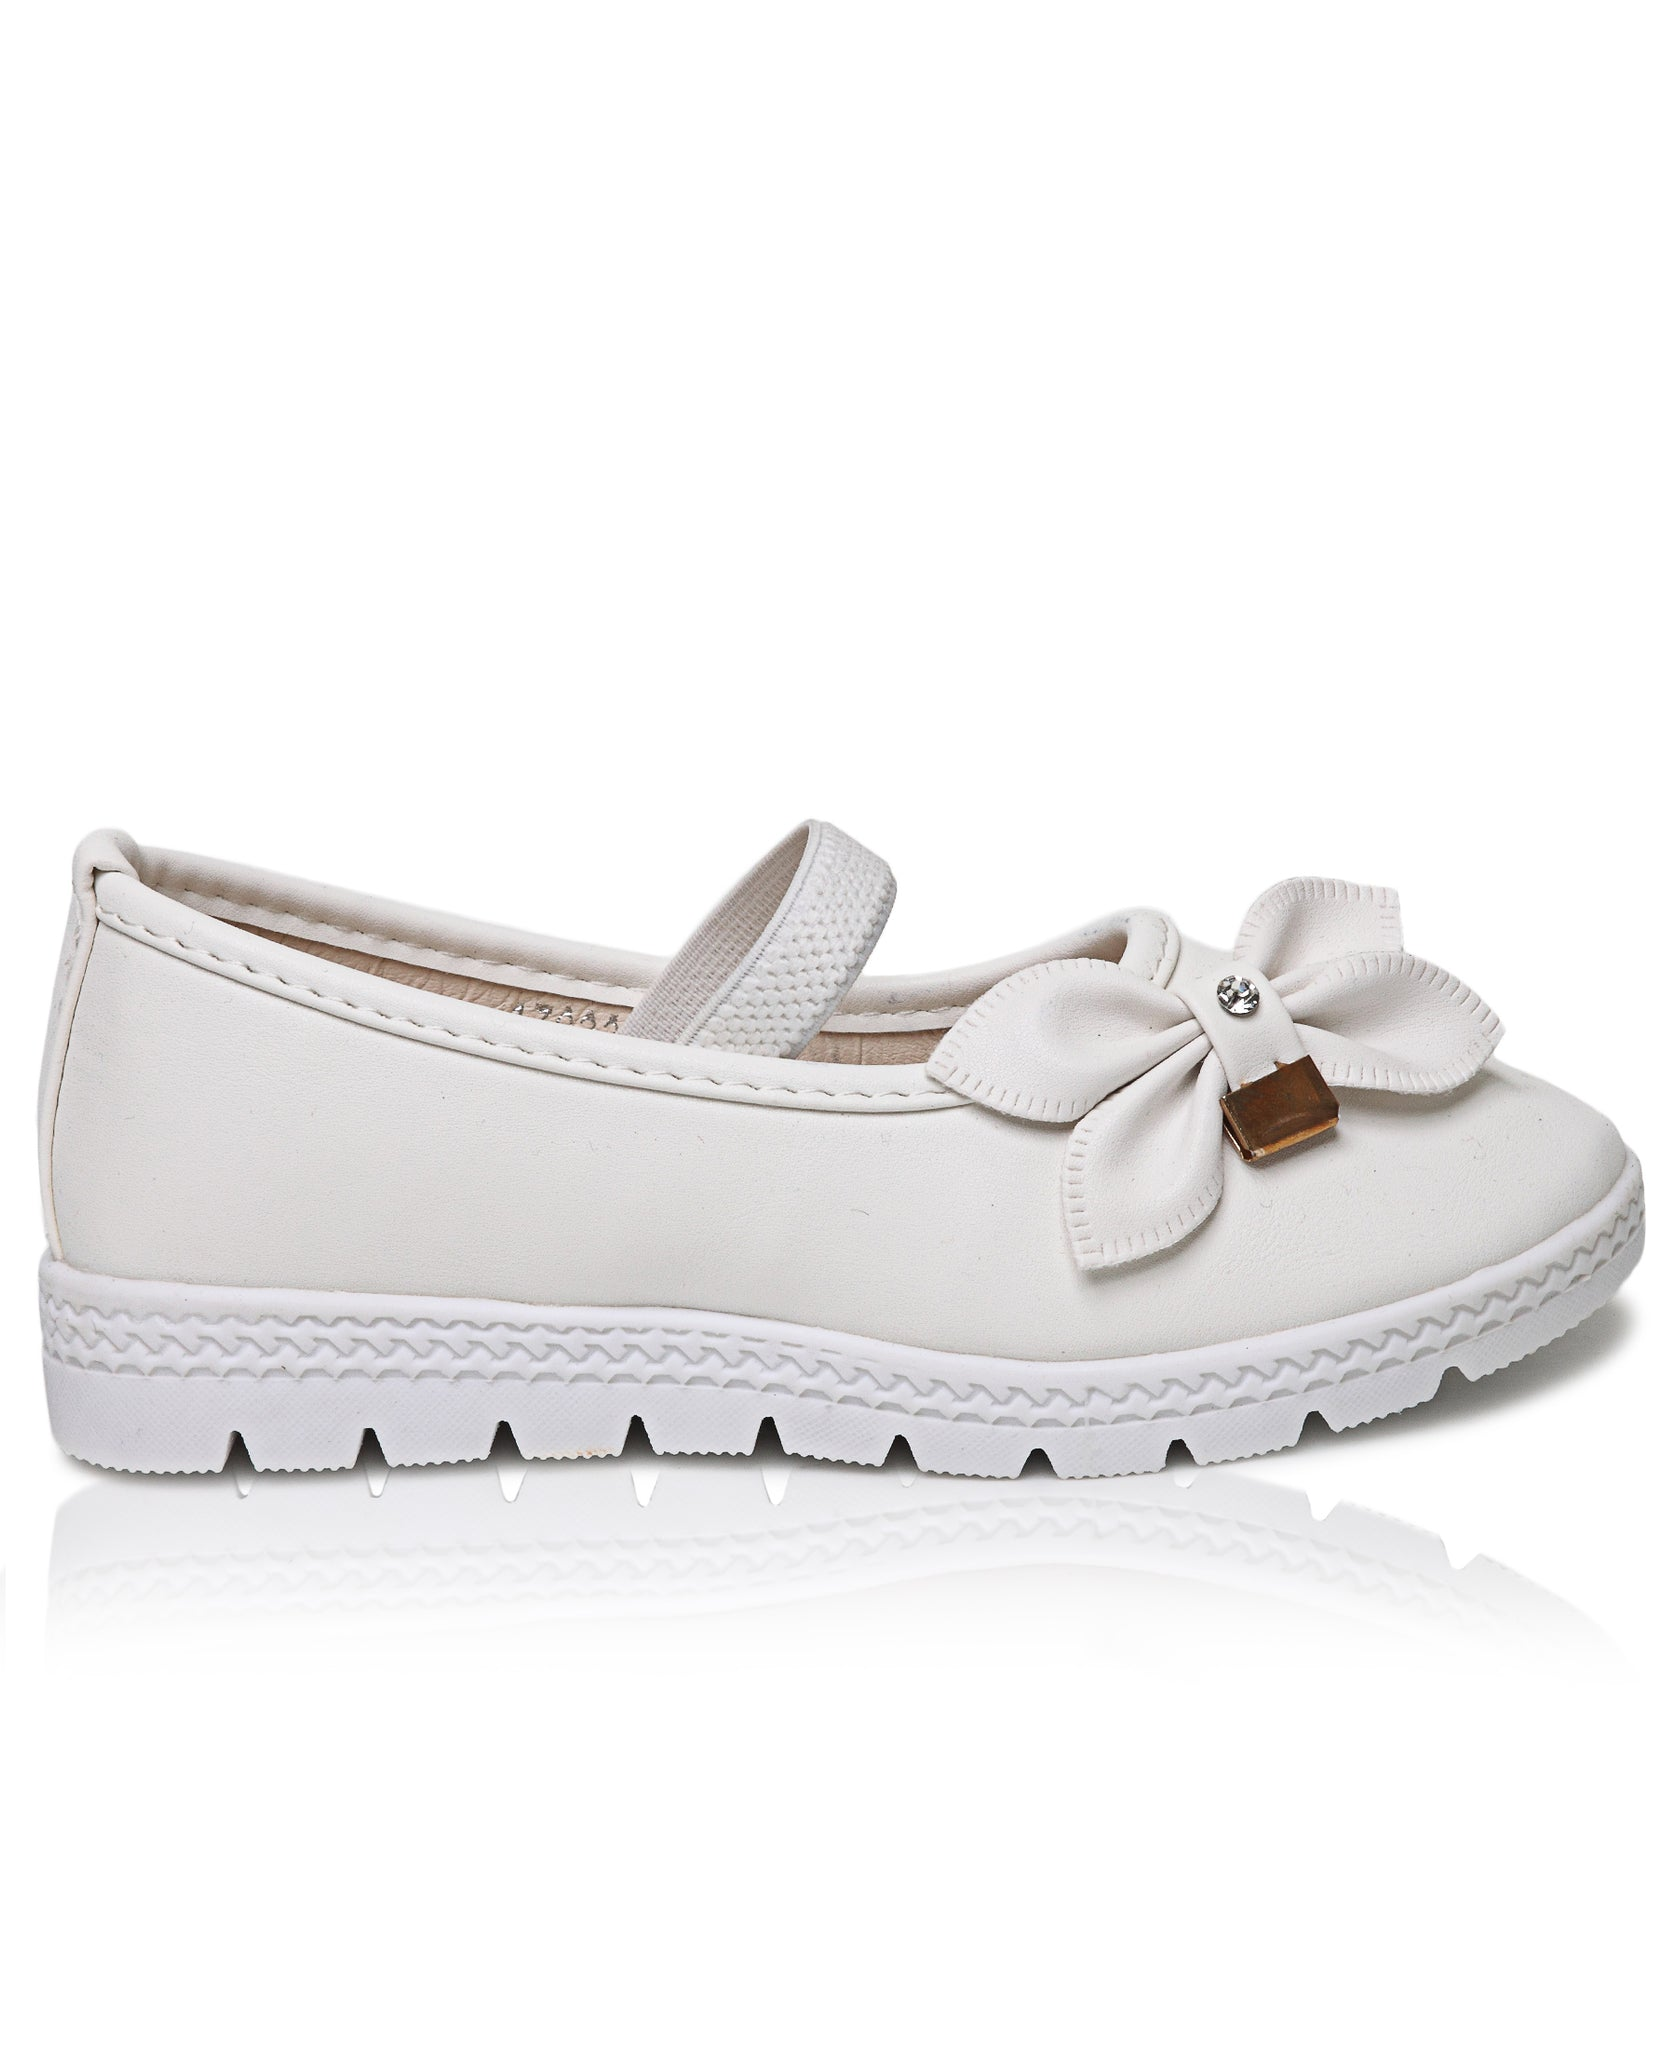 Girls Pumps - White